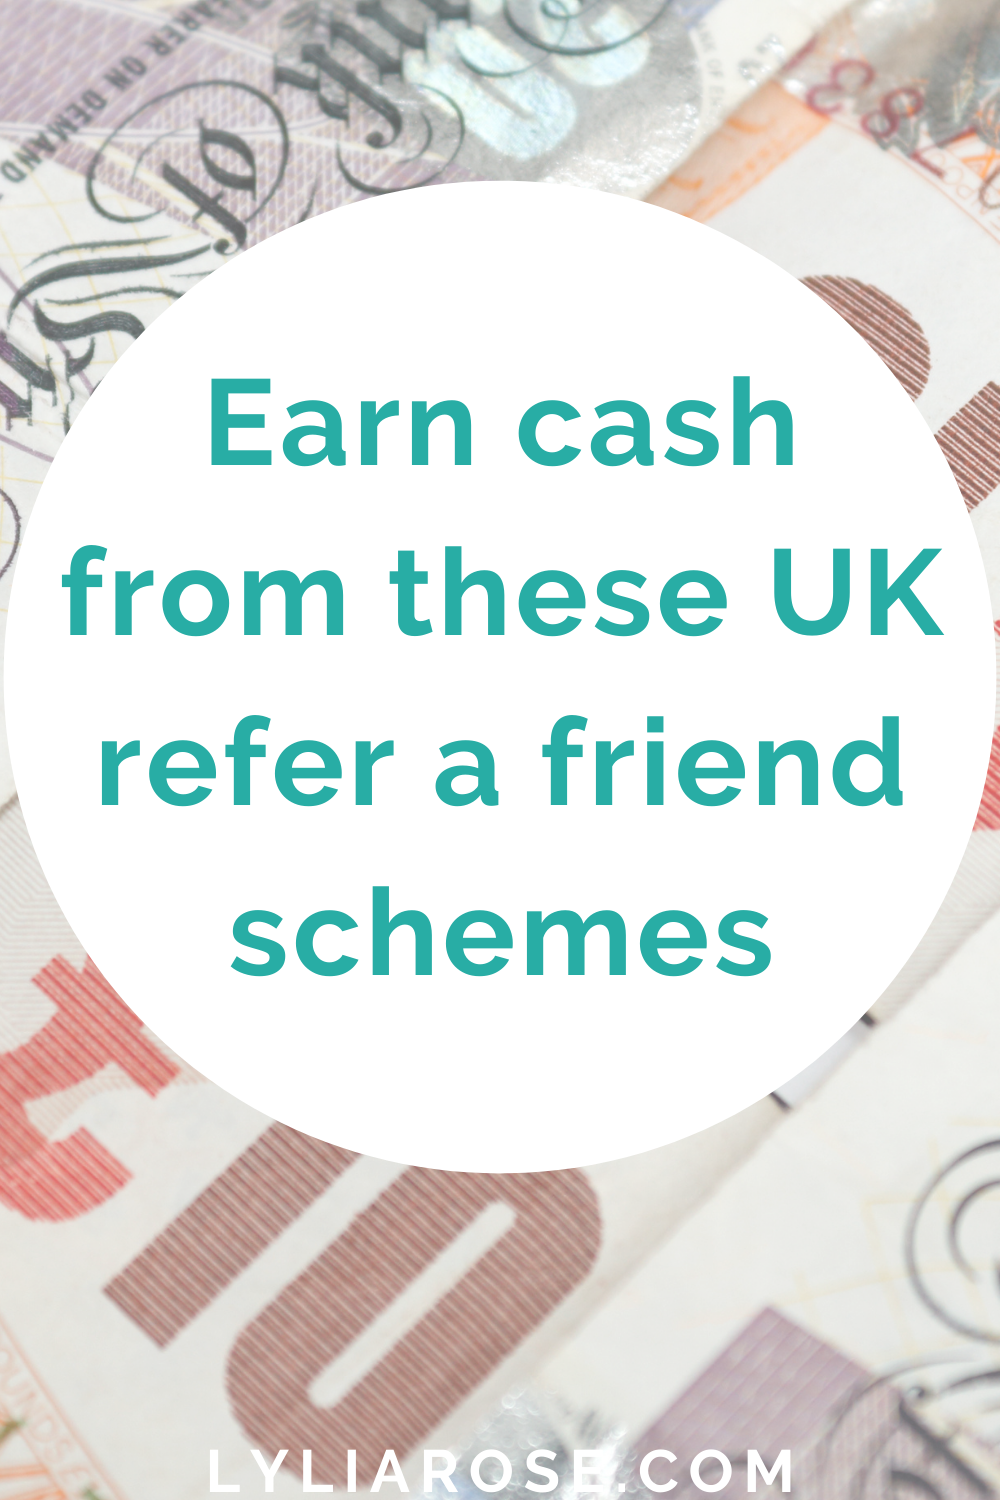 Earn cash from these UK refer a friend schemes